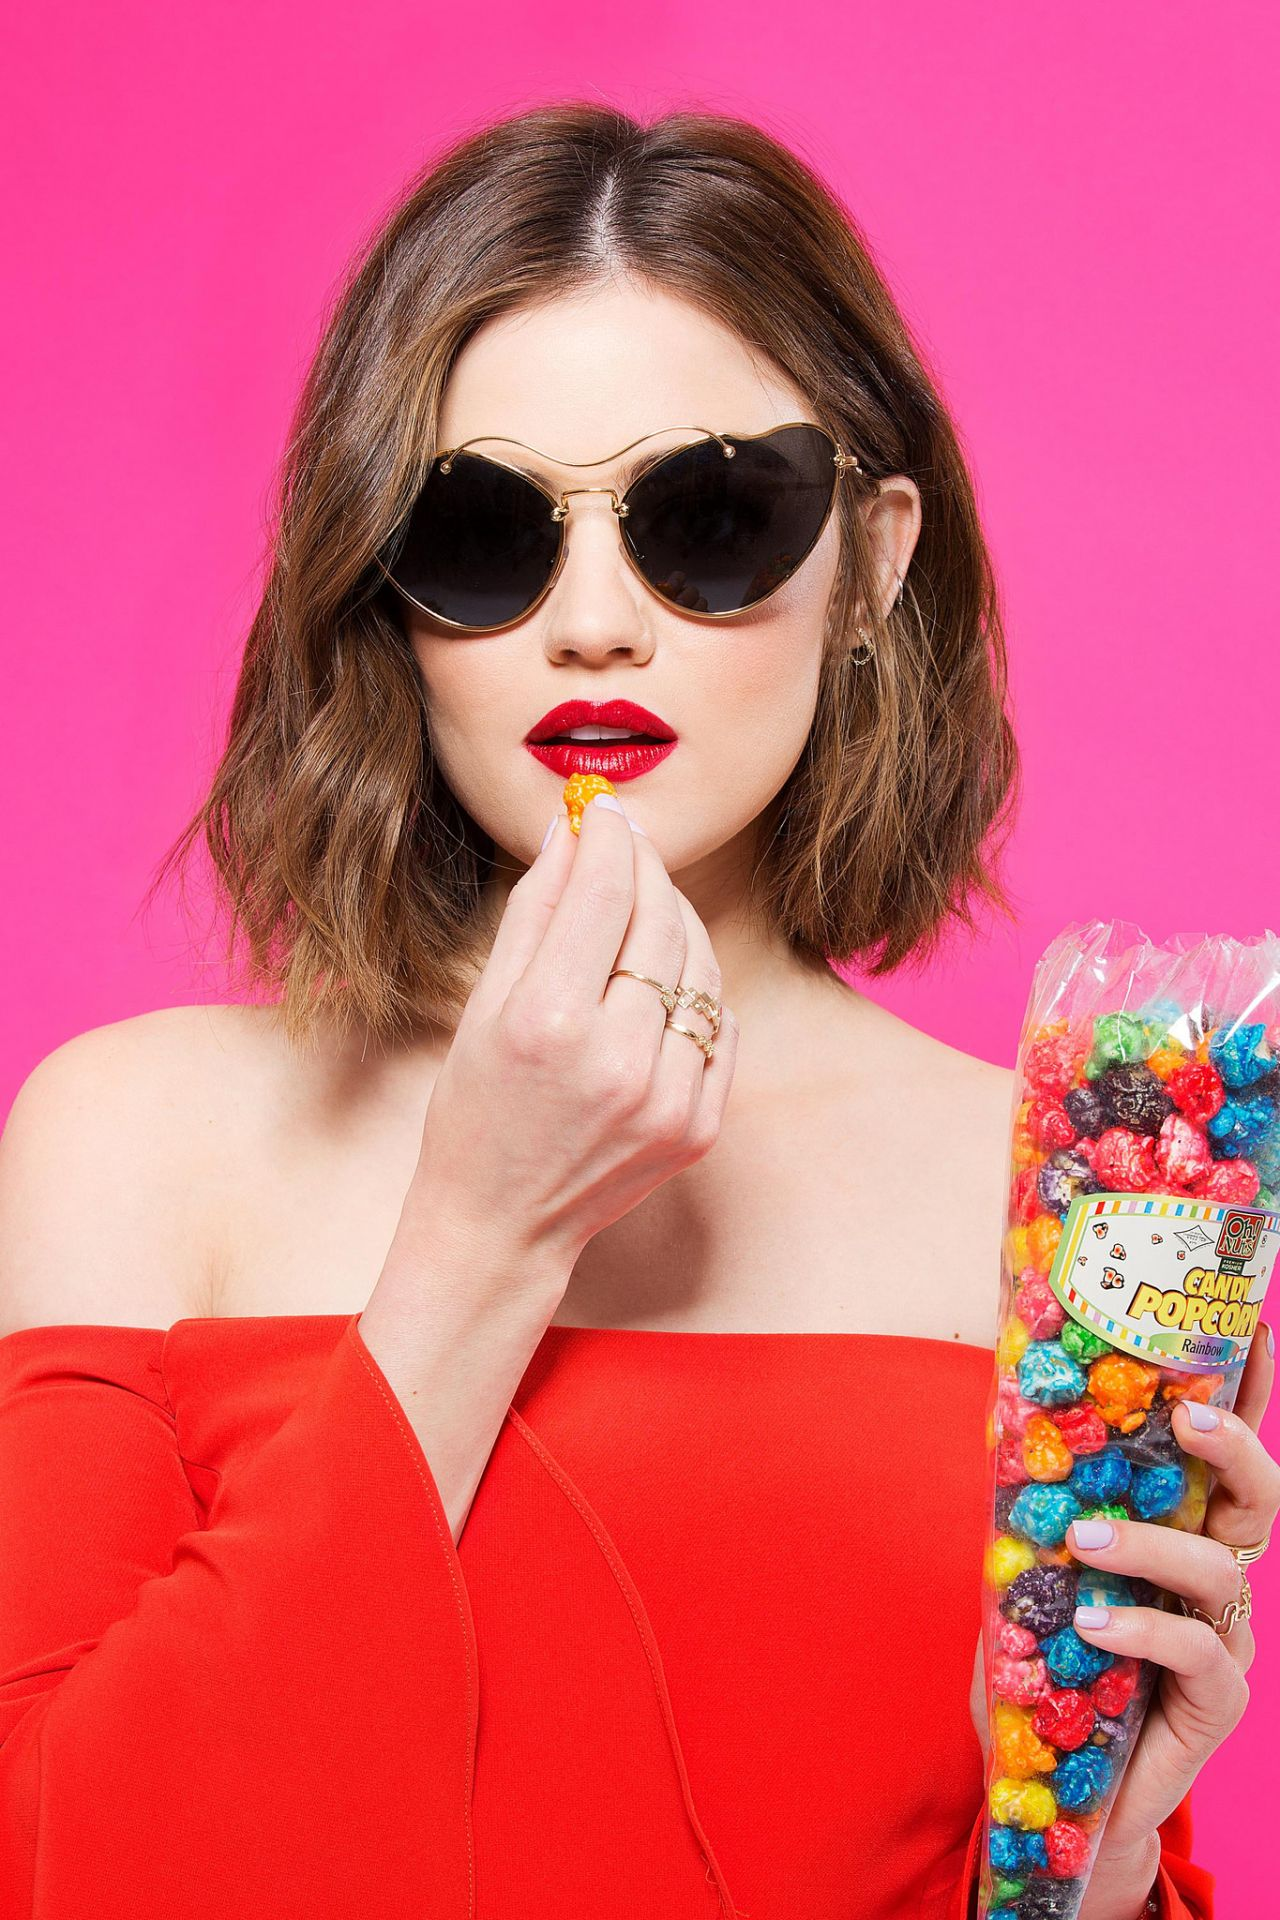 Lucy Hale Photoshoot For Cosmopolitan May 2016